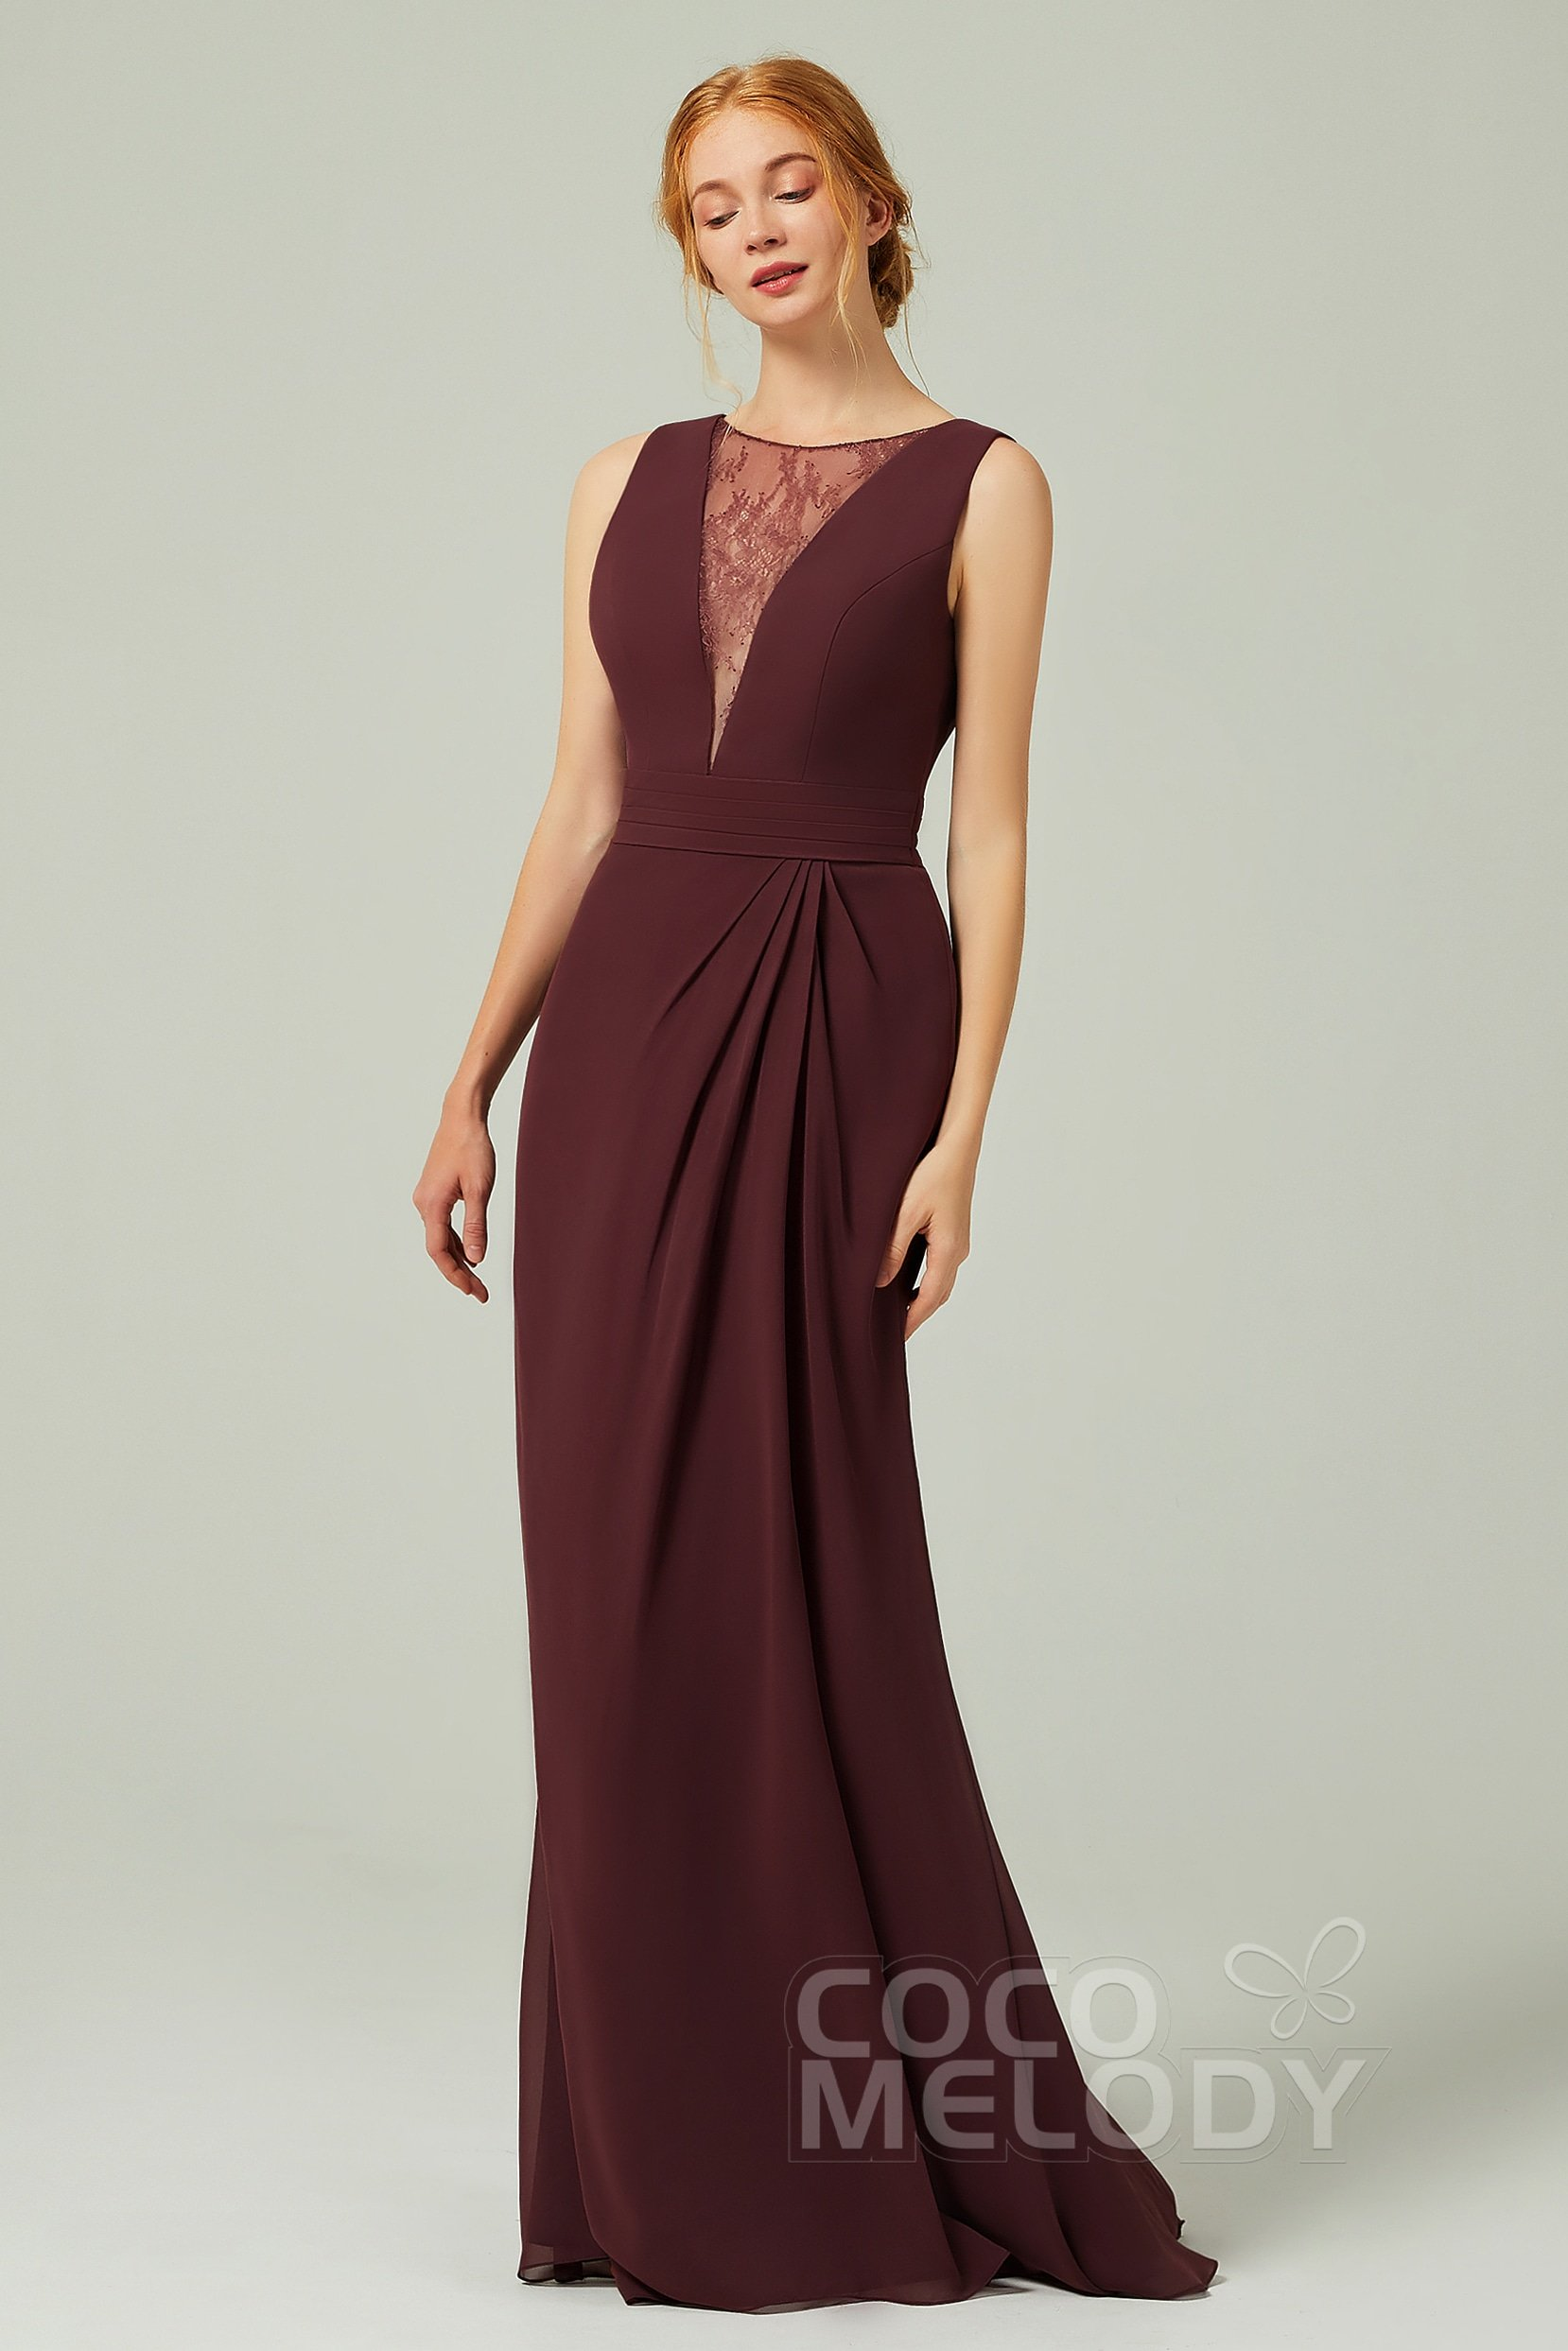 Cheap Modest Bridesmaid Dresses Under 50